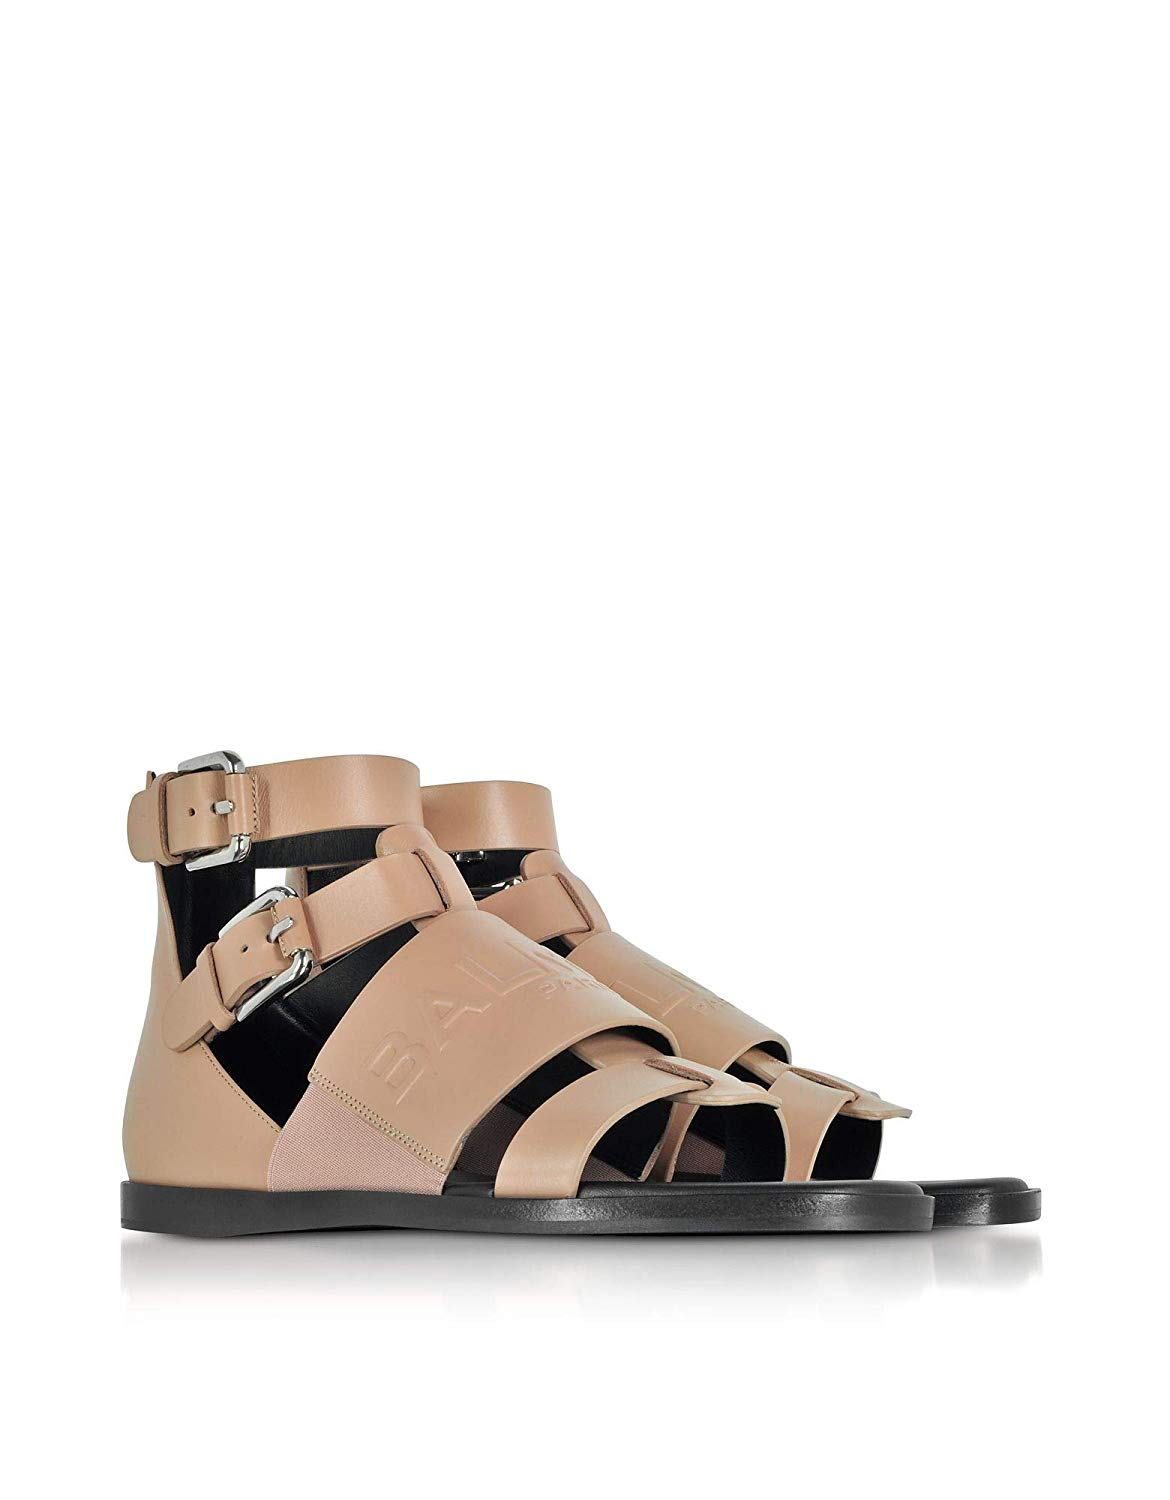 Balmain S8FC156PGDB1021 Pink Leather Sandals 01